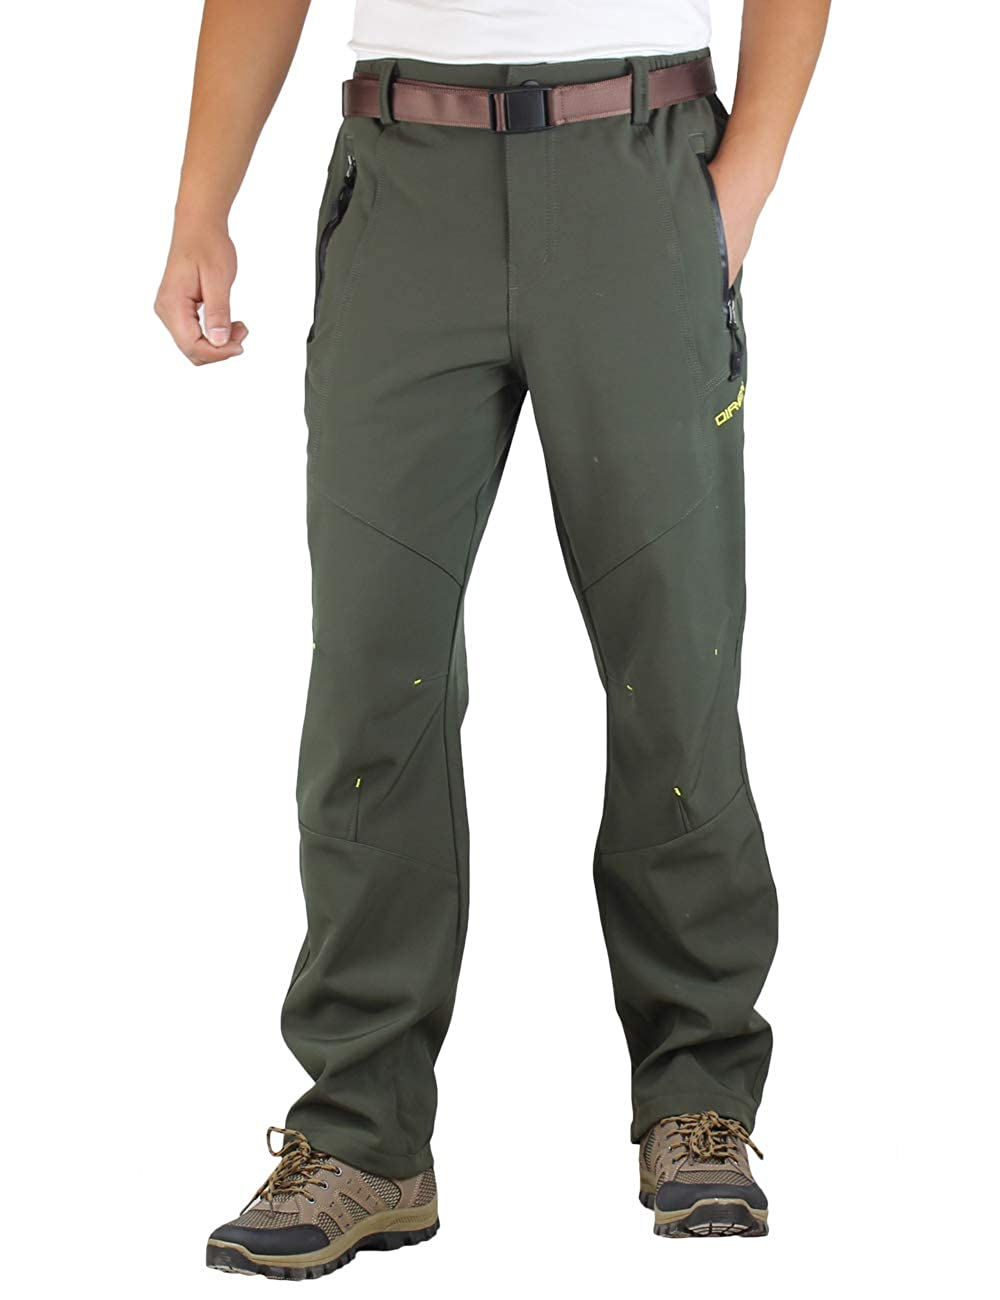 Rexcyril Mens Windproof Waterproof Soft Shell Fleece Lined Pants Outdoor Hiking Snow Ski Pants with Belt